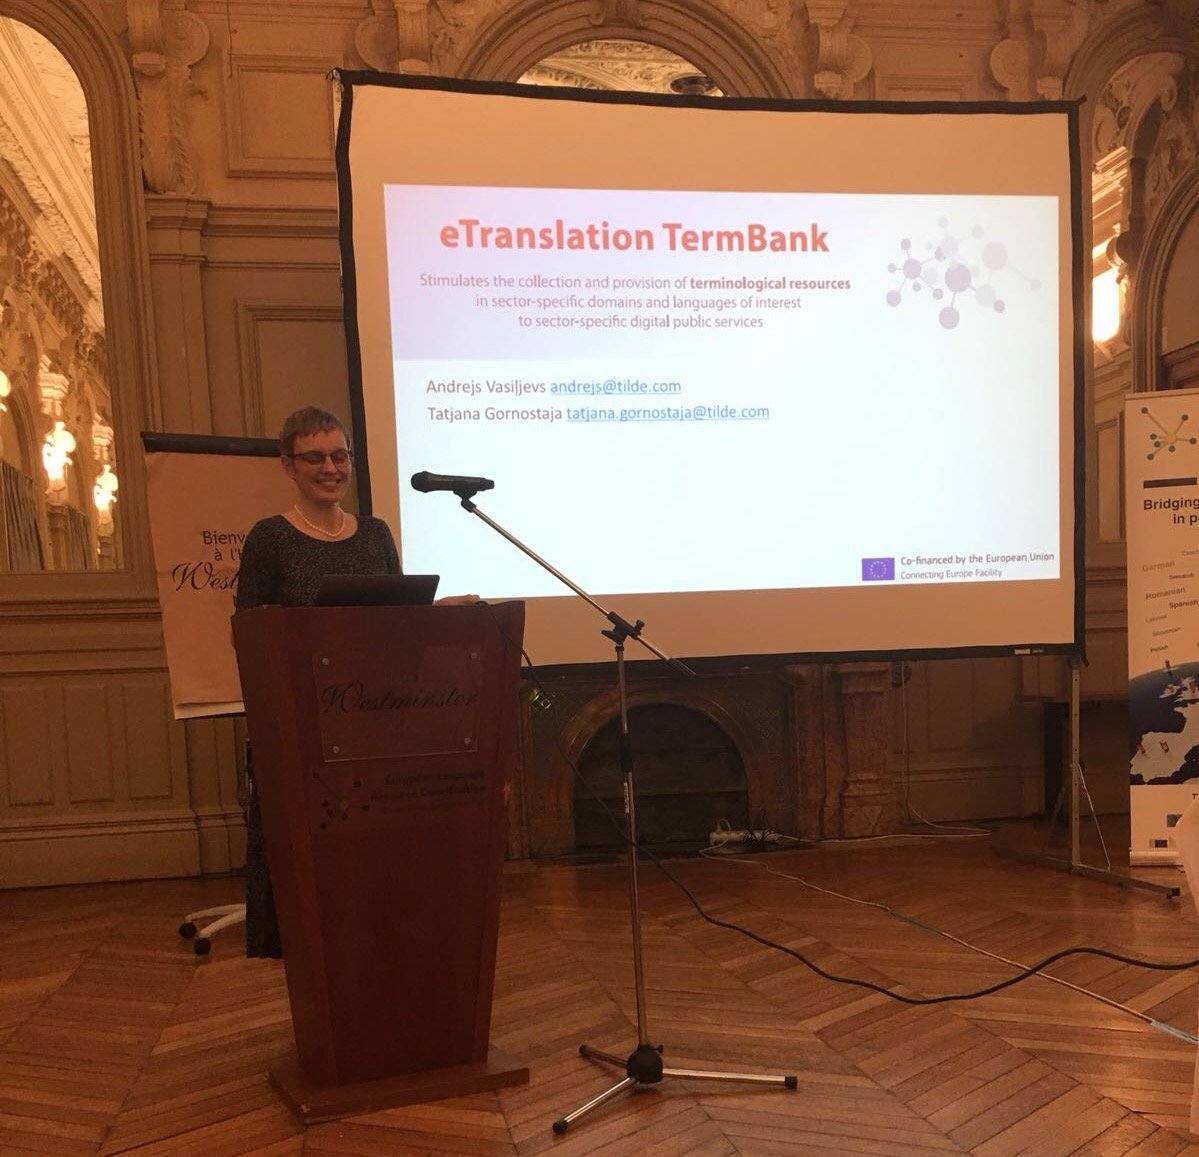 #eTranslation TermBank presented at 6th @LR_Coordination Language Resource Meeting in Nice  http://www. lr-coordination.eu/6LRBMeeting  &nbsp;   #language #translation #multilingual #terminology #t9y #CEF #CEFTelecom #DSI #ConnectingEurope @inea_eu @LR_Coordination <br>http://pic.twitter.com/ibdkXcKh9e